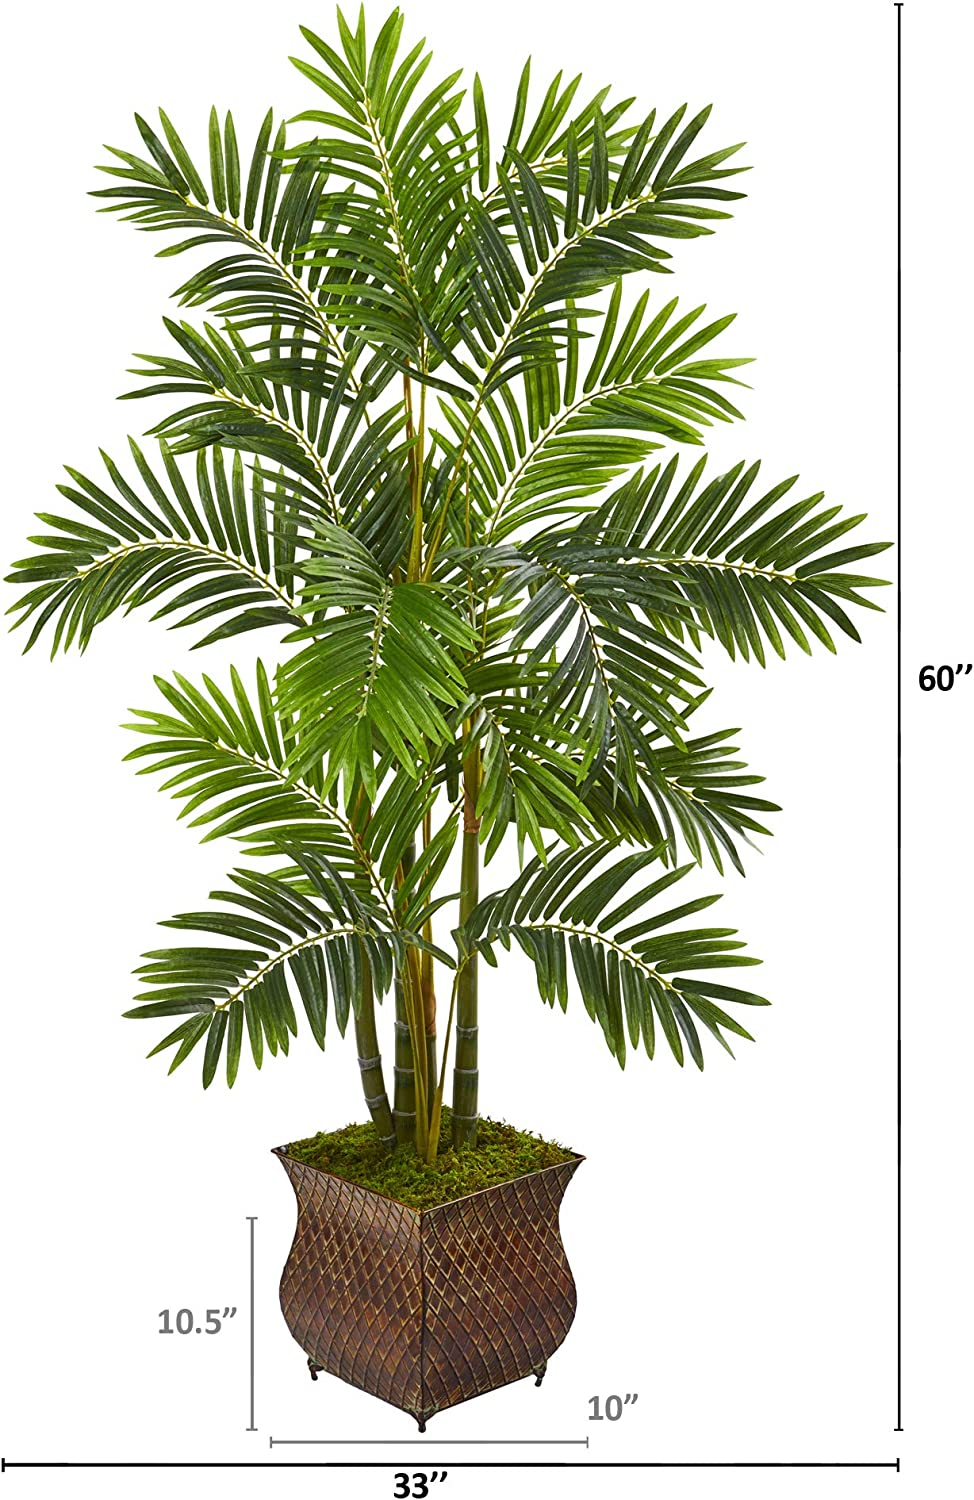 Nearly Natural 60in Areca Palm Artificial Metal Planter Silk Trees Green Furniture Decor